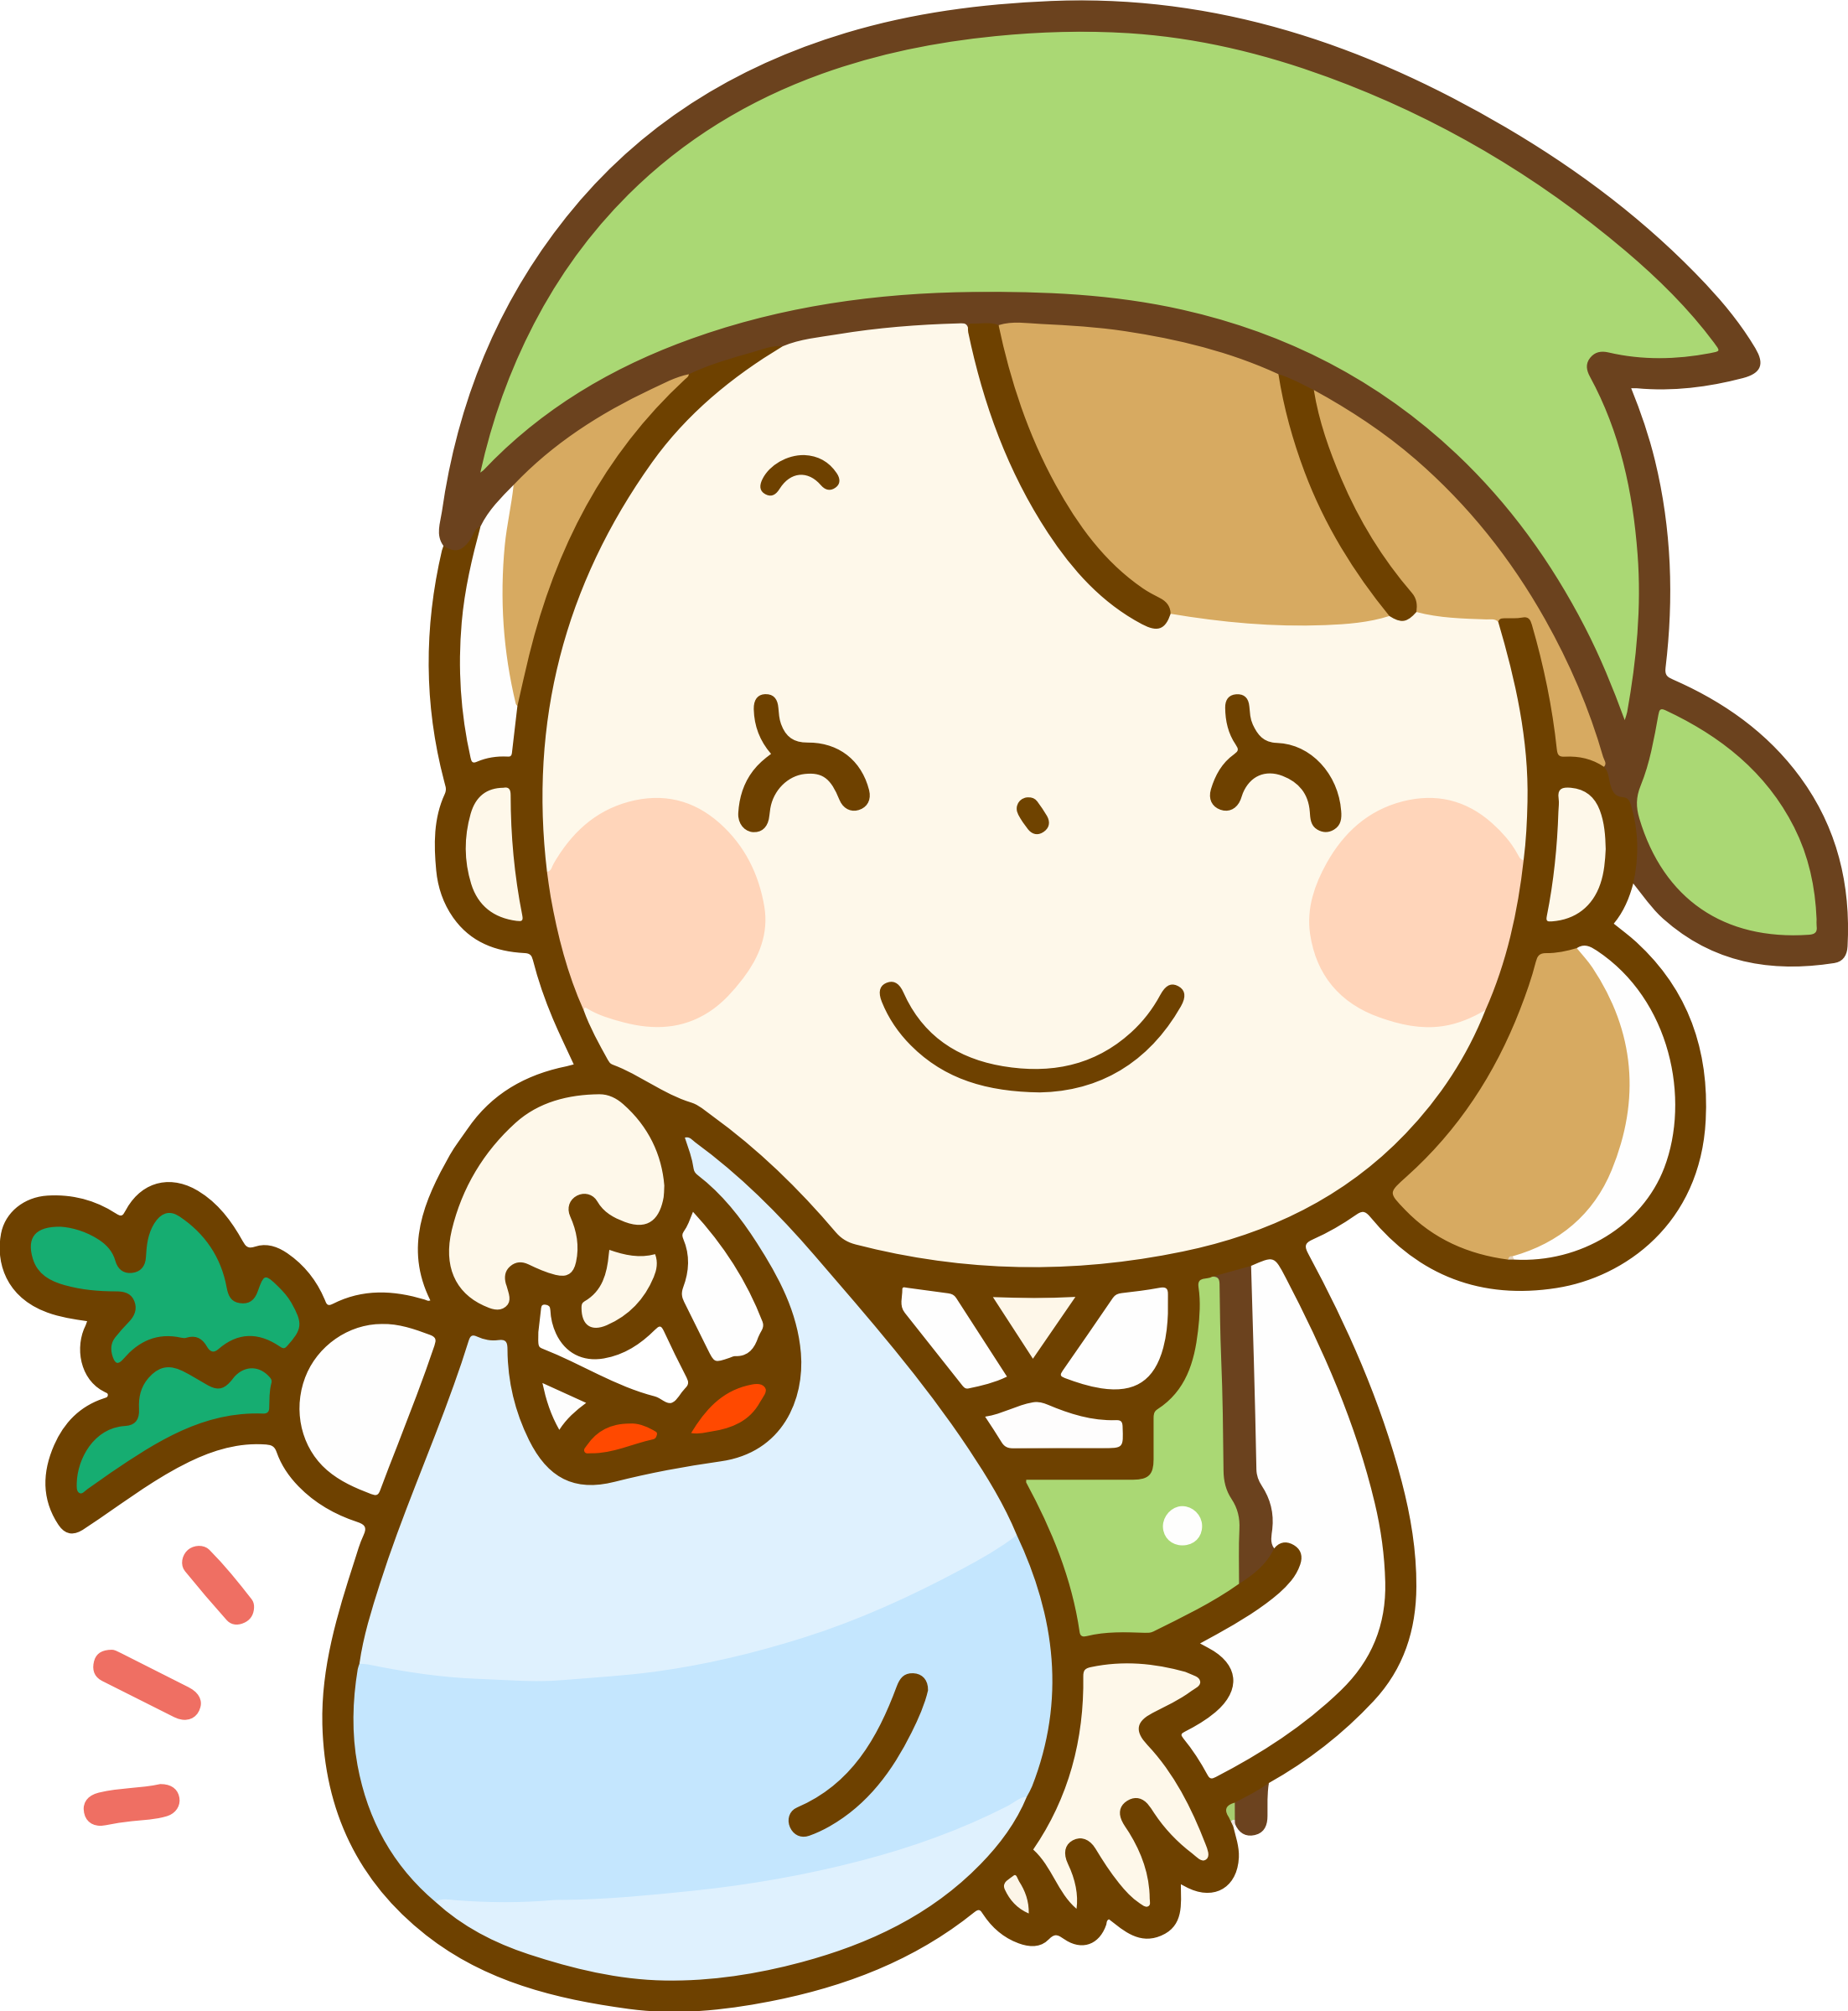 clip free Supermarket clipart cute store. Grocery clerk big image.